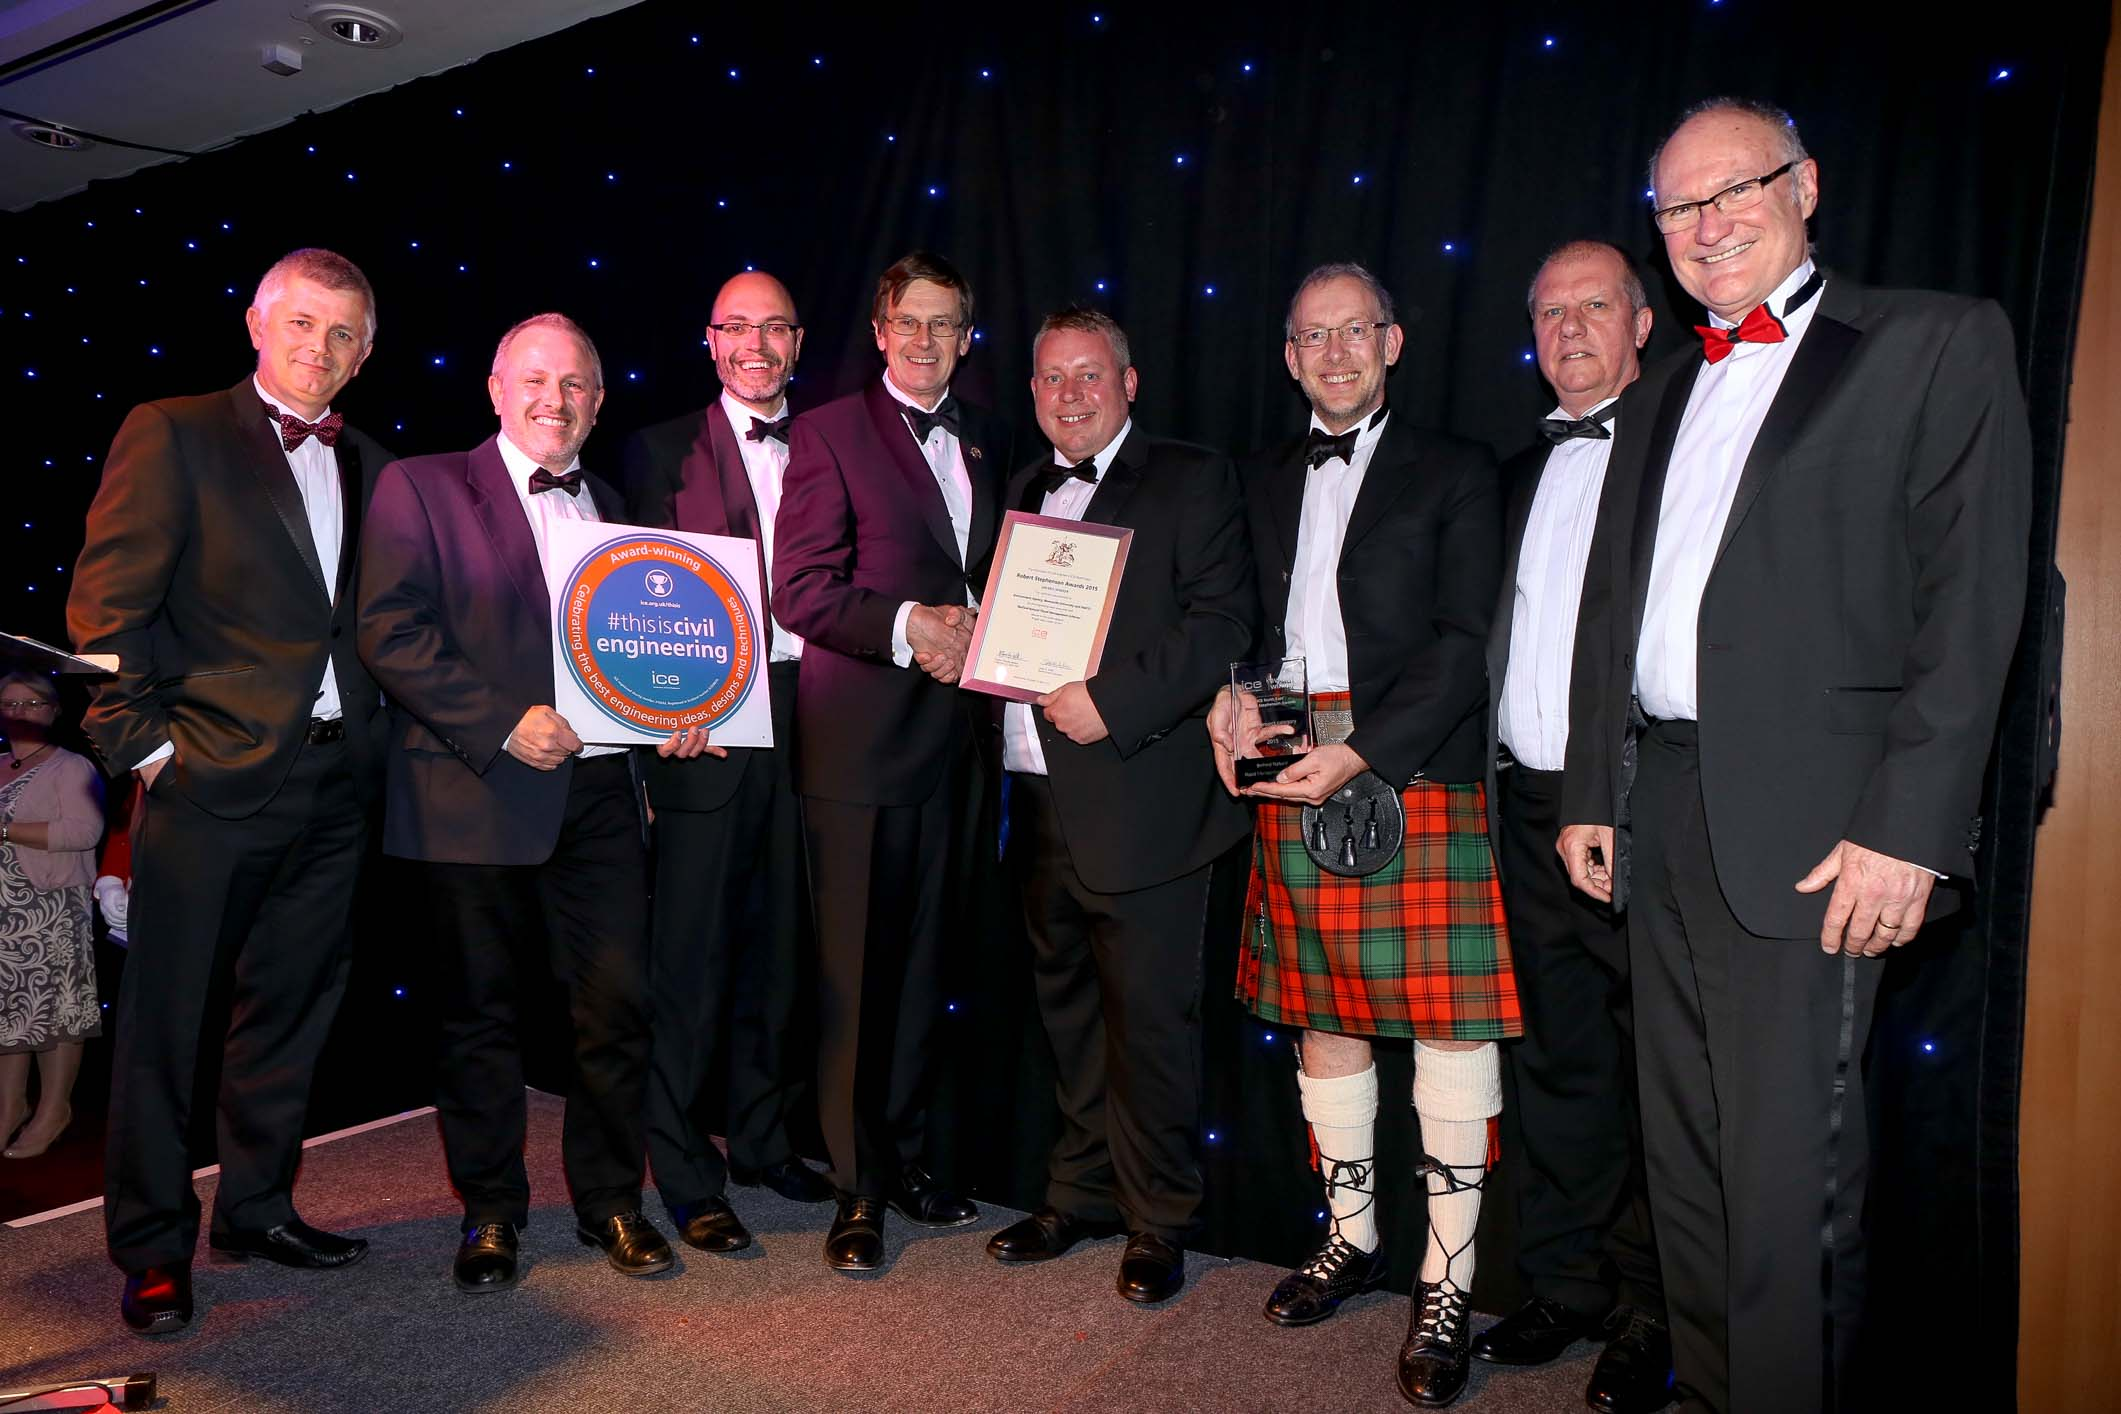 Flow Partnership member, Paul Quinn (second from left in photo) and his partners and team win the prestigious ICE award for their iconic BELFORD PROJECT  (read about project on our website here)